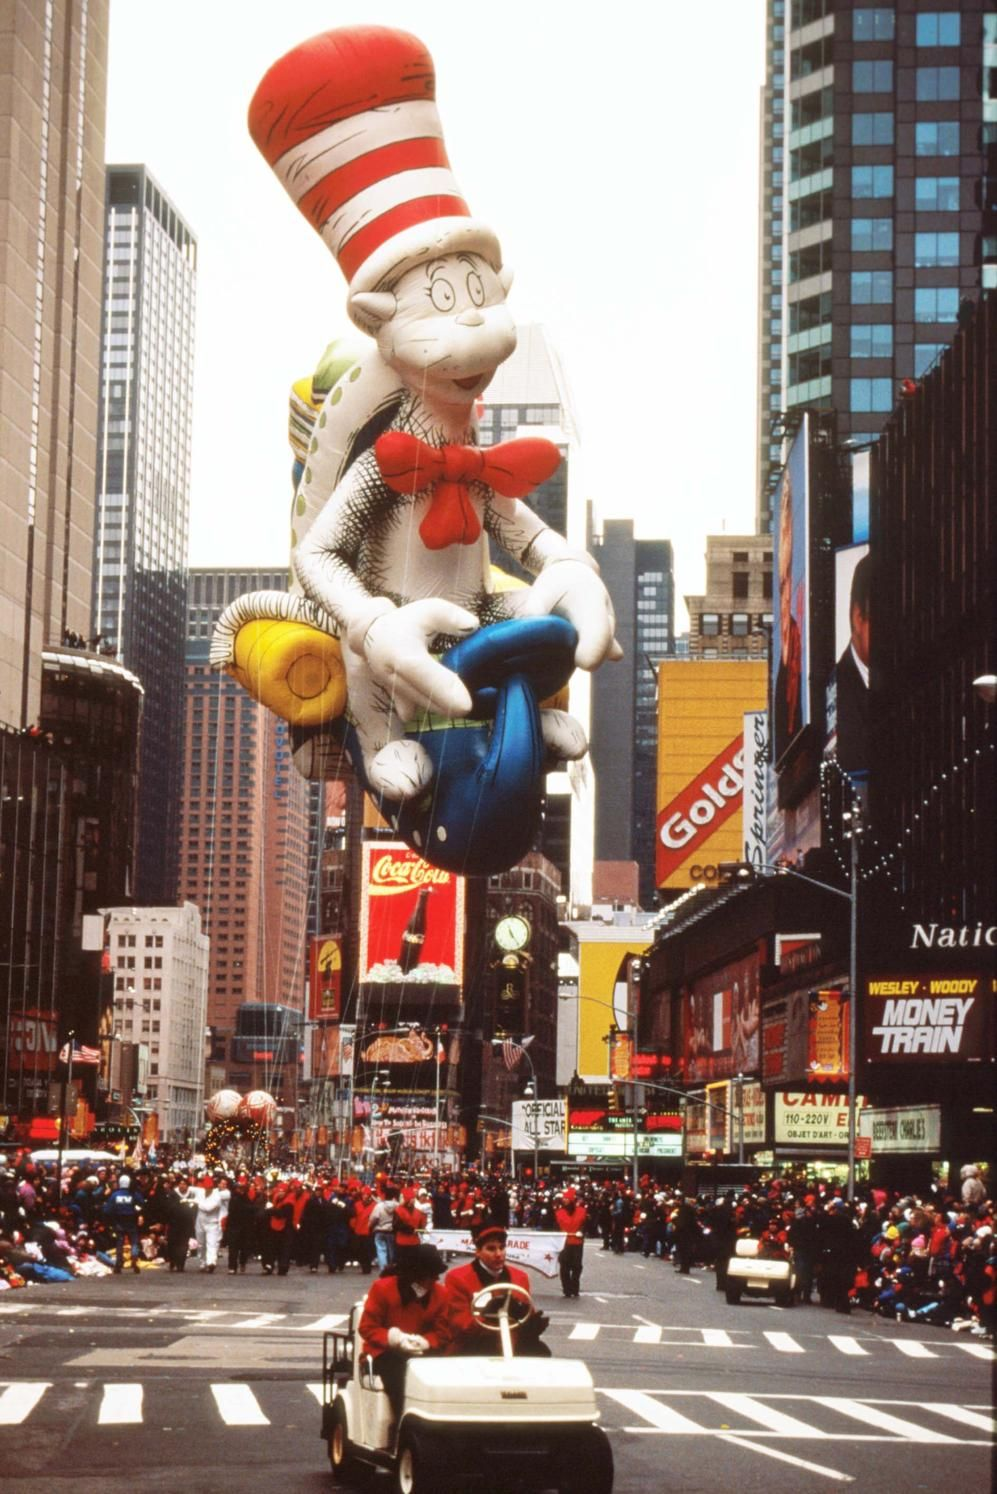 27 Memorable Macy S Thanksgiving Day Parade Balloons In 2020 Macy S Thanksgiving Day Parade Macy S Thanksgiving Day Parade Christmas Parade Floats